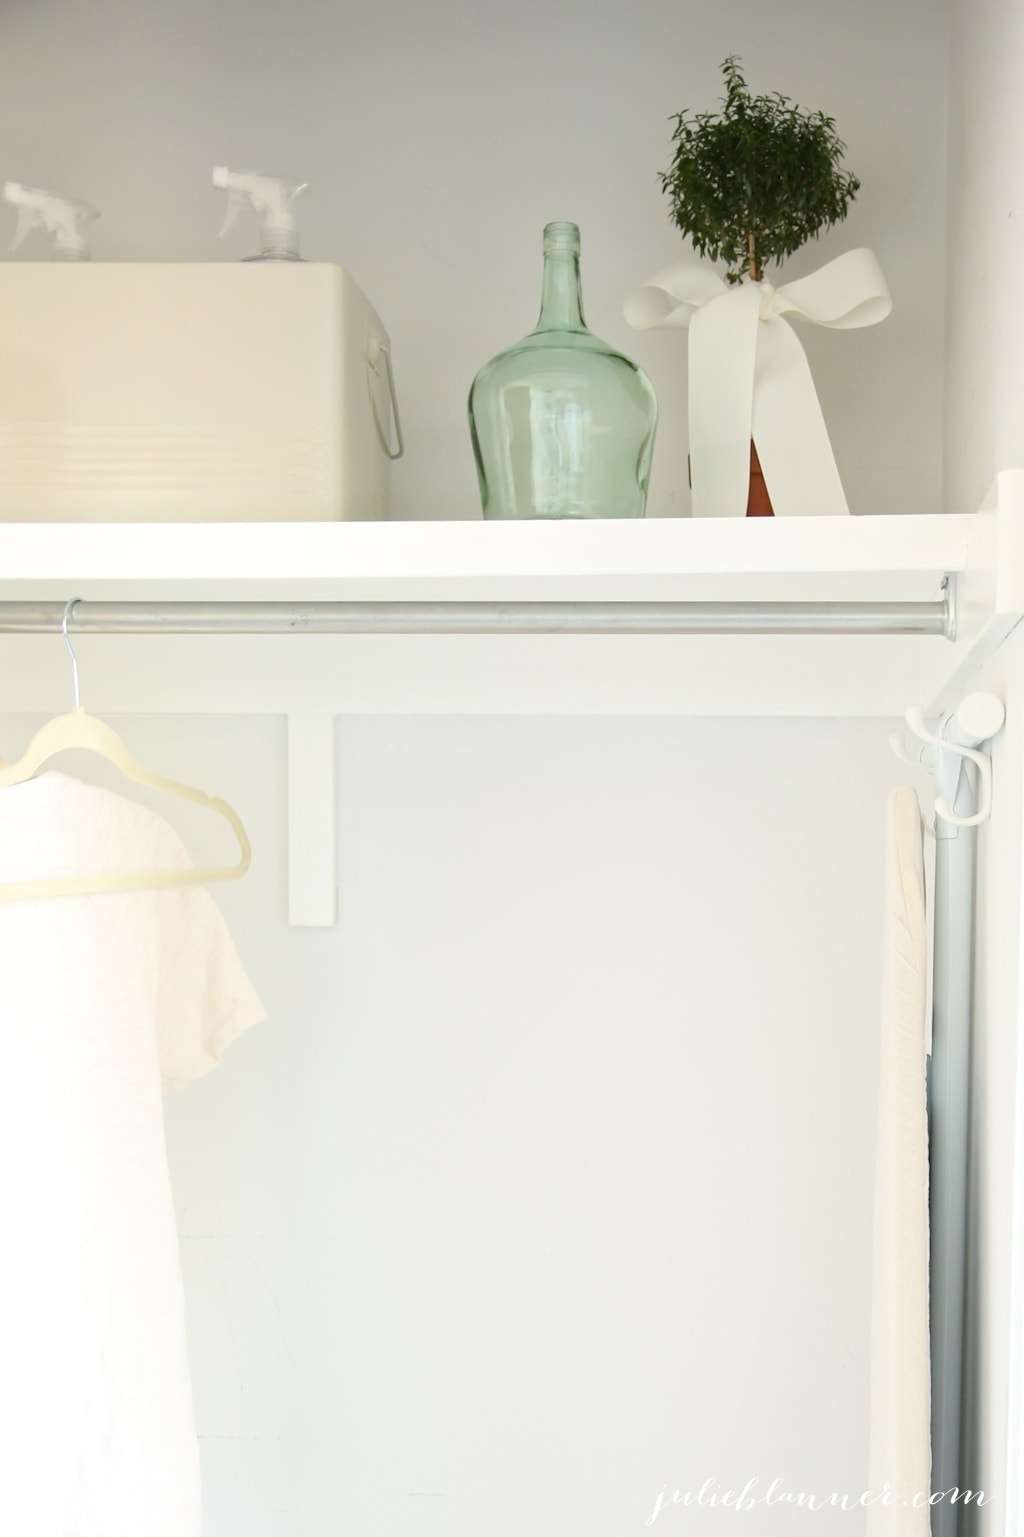 Pretty decor ideas for the laundry room